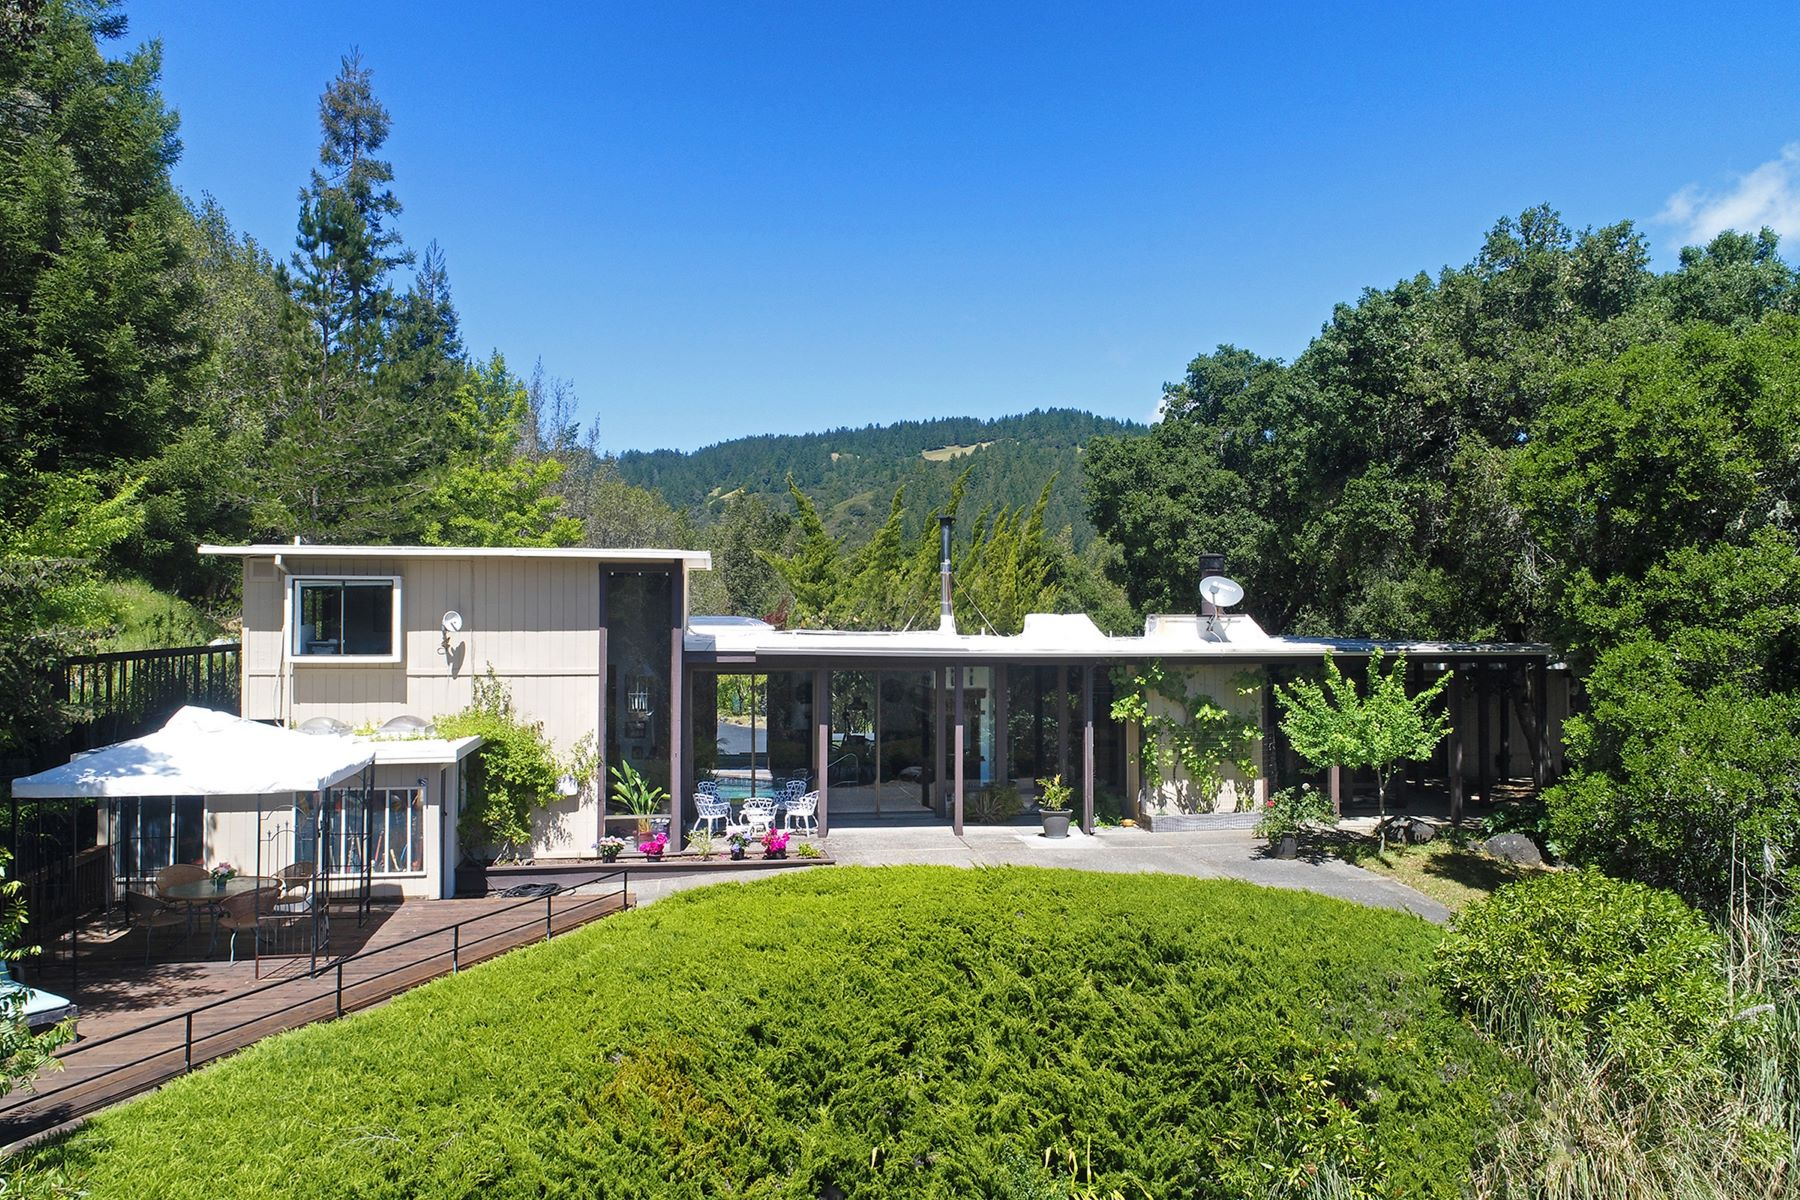 獨棟家庭住宅 為 出售 在 Blissfully Private Country Residence 5675 Lucas Valley Rd Nicasio, 加利福尼亞州 94946 美國